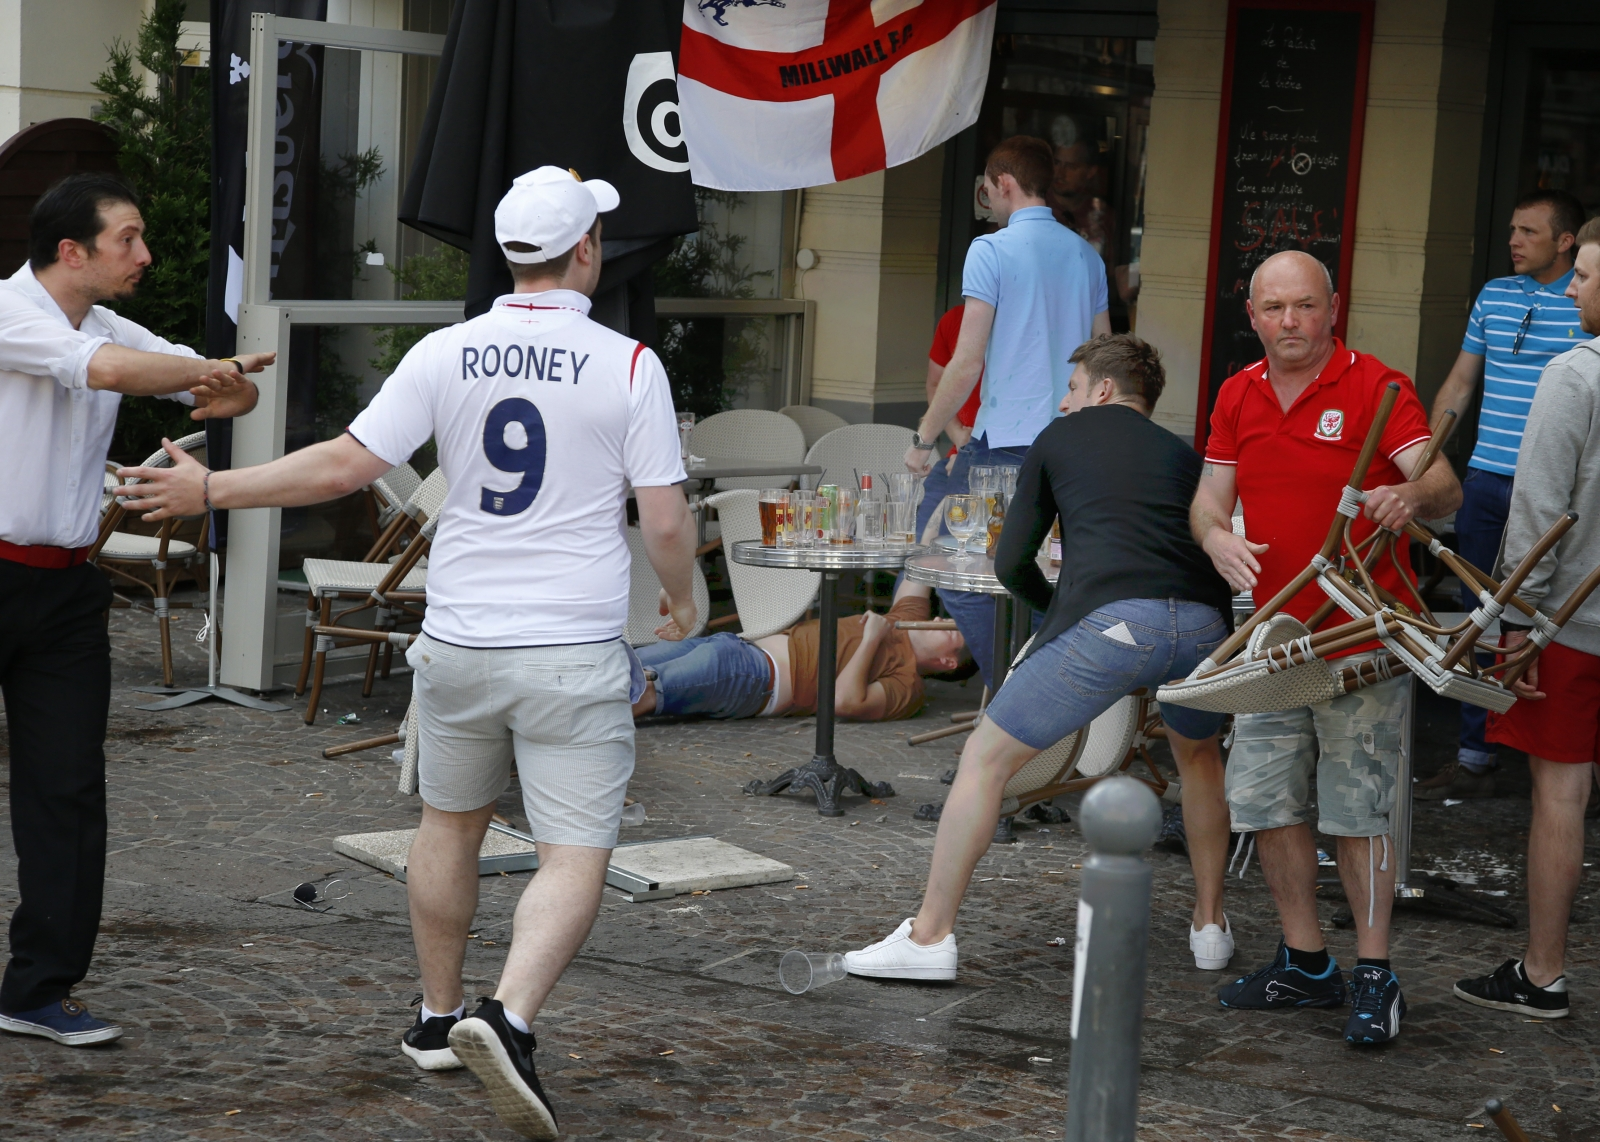 lille football fighting england wales russia